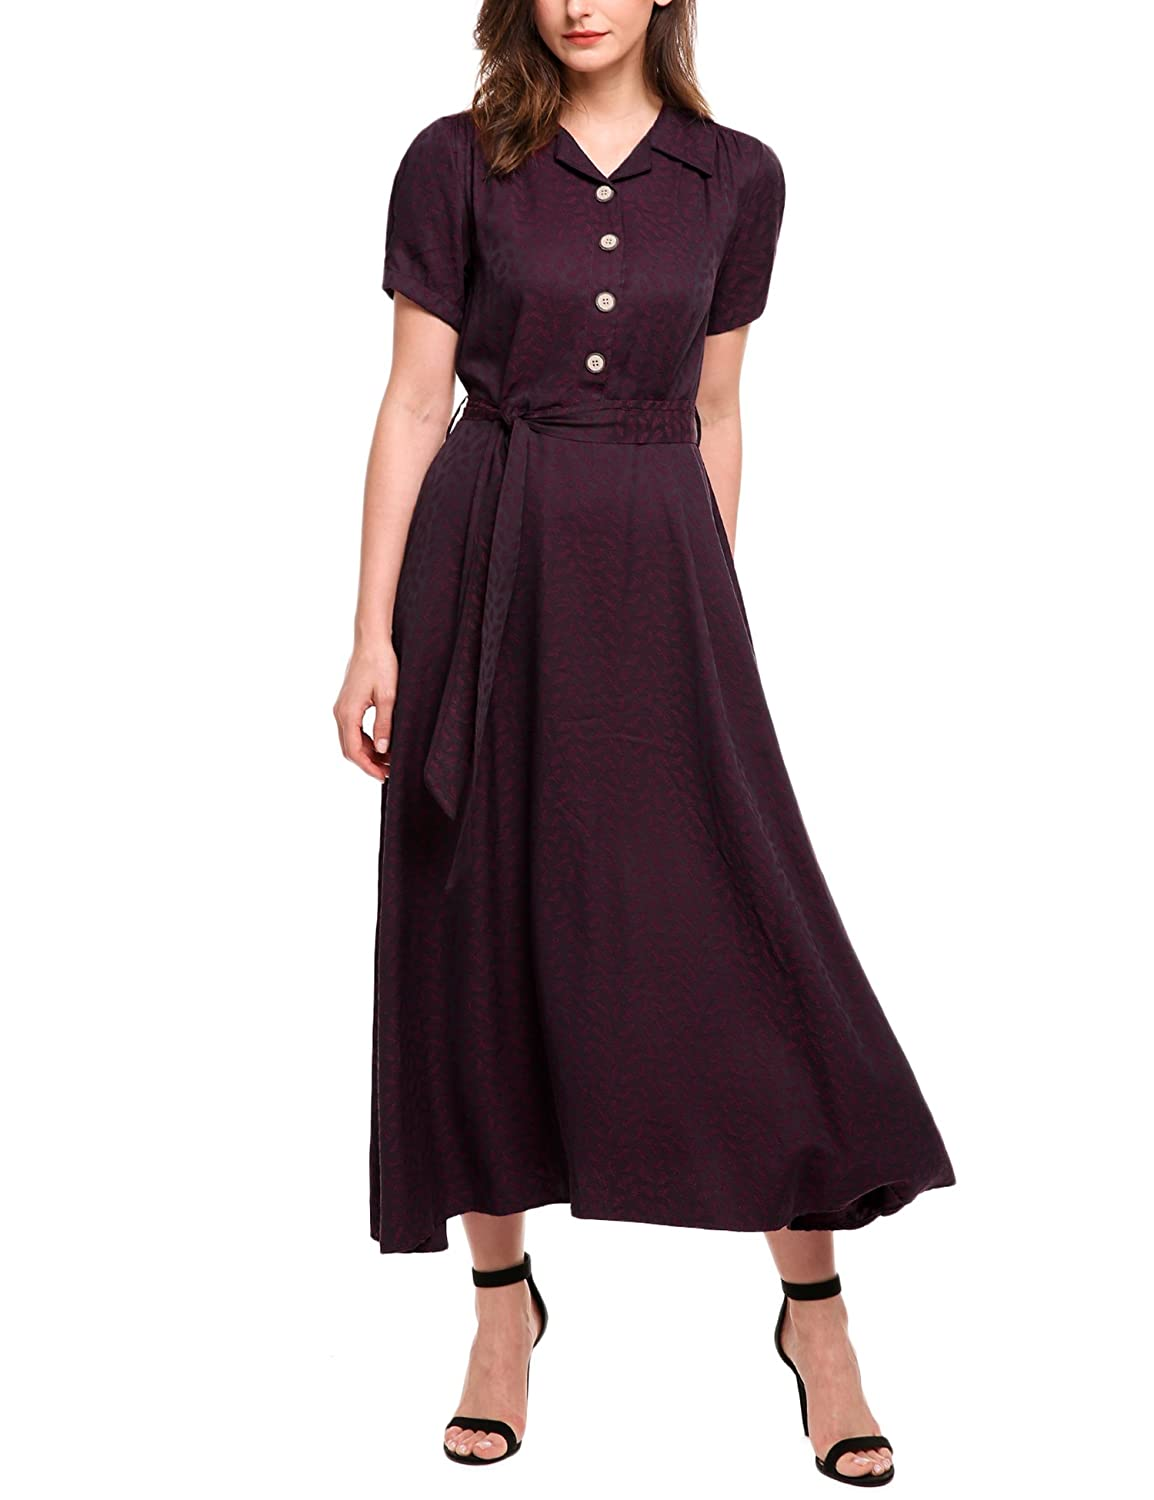 500 Vintage Style Dresses for Sale | Vintage Inspired Dresses ACEVOG Women Vintage Style Turn Down Collar Short Sleeve High Waist Maxi Swing Dress with Belt $38.99 AT vintagedancer.com